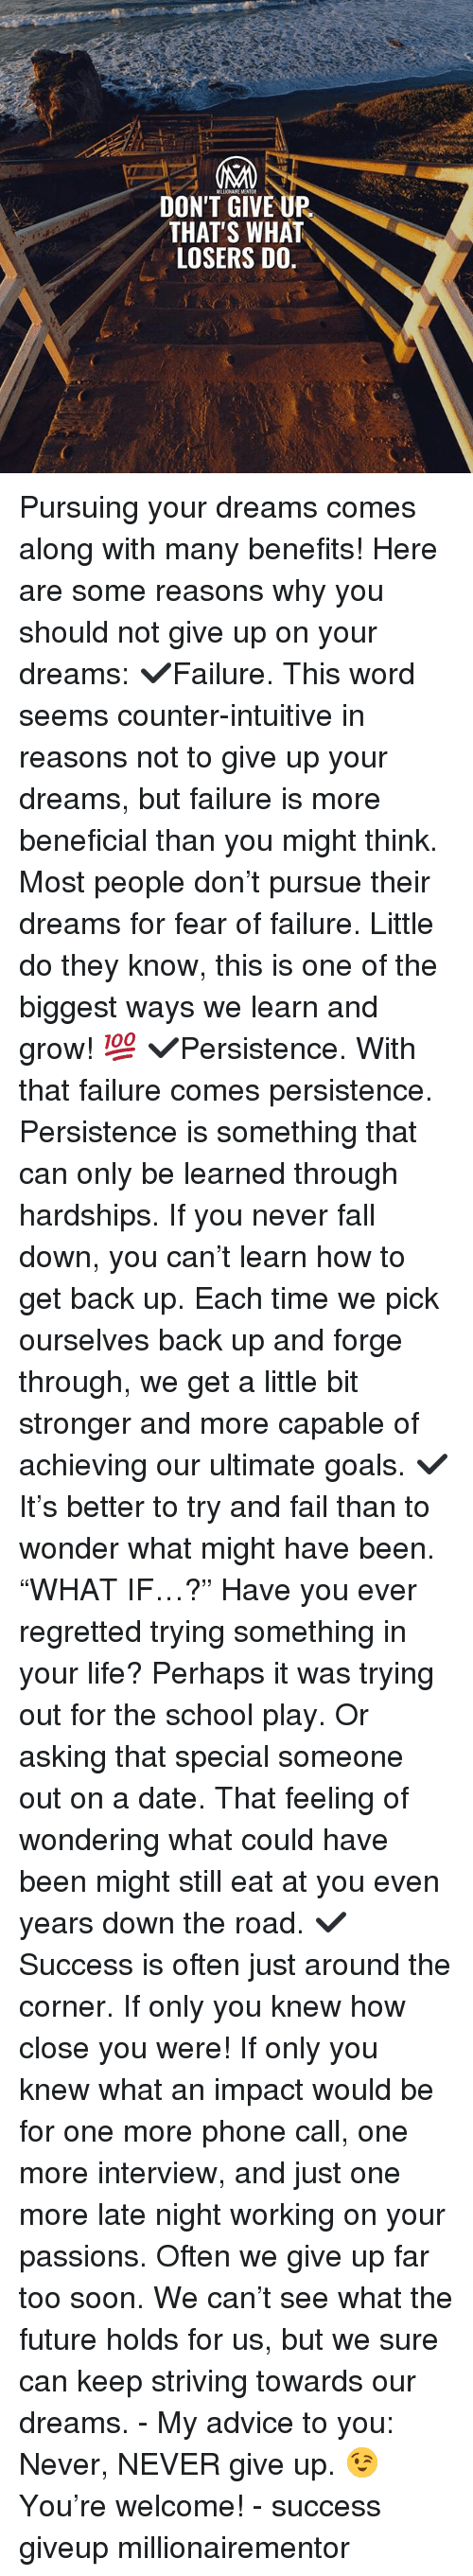 """Advice, Fail, and Fall: DON'T GIVE UP  THAT'S WHAT  LOSERS DO. Pursuing your dreams comes along with many benefits! Here are some reasons why you should not give up on your dreams: ✔️Failure. This word seems counter-intuitive in reasons not to give up your dreams, but failure is more beneficial than you might think. Most people don't pursue their dreams for fear of failure. Little do they know, this is one of the biggest ways we learn and grow! 💯 ✔️Persistence. With that failure comes persistence. Persistence is something that can only be learned through hardships. If you never fall down, you can't learn how to get back up. Each time we pick ourselves back up and forge through, we get a little bit stronger and more capable of achieving our ultimate goals. ✔️It's better to try and fail than to wonder what might have been. """"WHAT IF…?"""" Have you ever regretted trying something in your life? Perhaps it was trying out for the school play. Or asking that special someone out on a date. That feeling of wondering what could have been might still eat at you even years down the road. ✔️Success is often just around the corner. If only you knew how close you were! If only you knew what an impact would be for one more phone call, one more interview, and just one more late night working on your passions. Often we give up far too soon. We can't see what the future holds for us, but we sure can keep striving towards our dreams. - My advice to you: Never, NEVER give up. 😉 You're welcome! - success giveup millionairementor"""